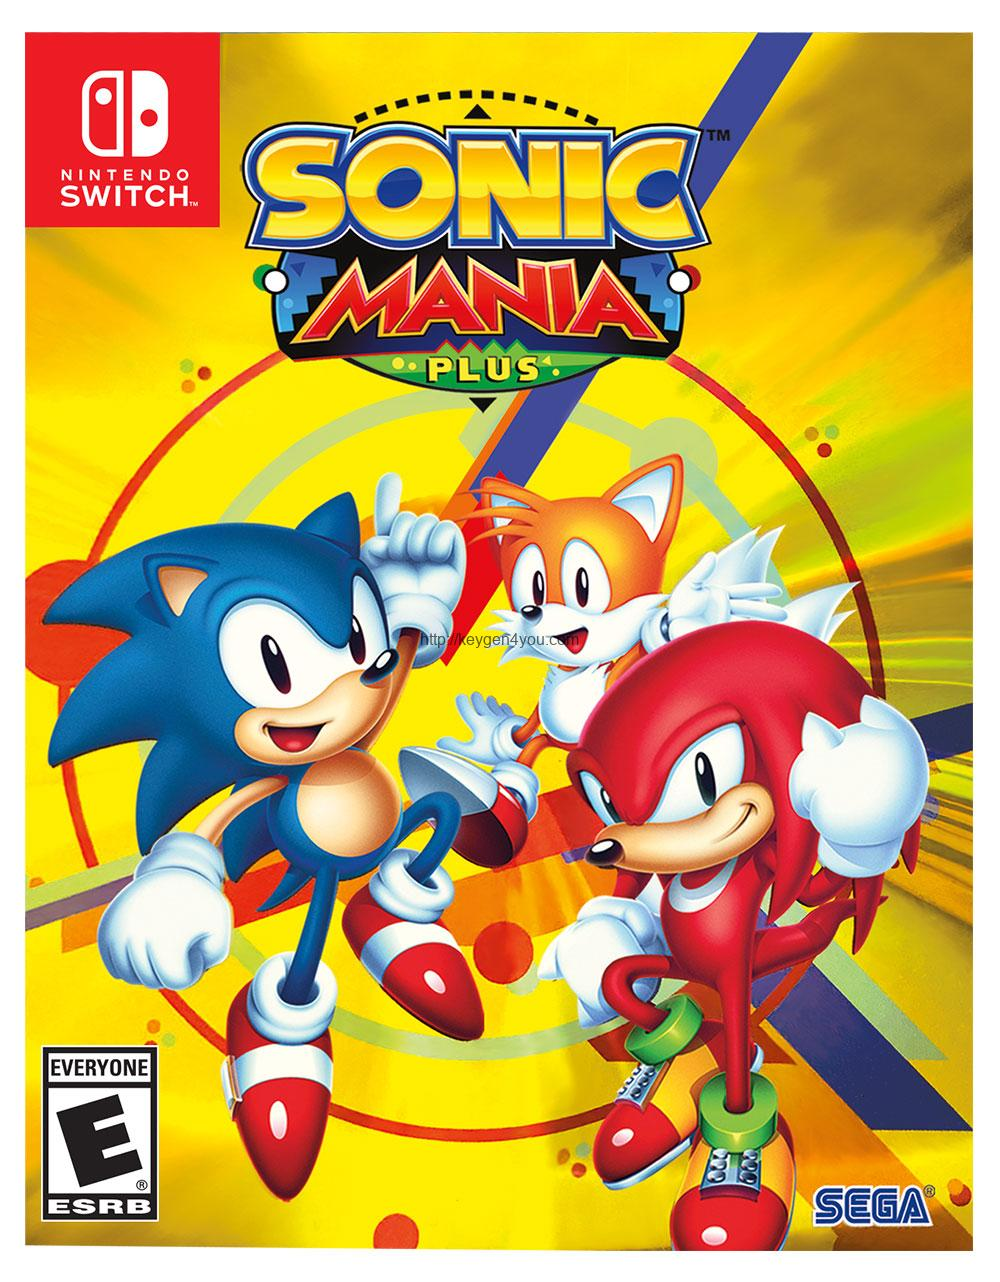 Sonic Mania PC Crack latest version Download Free 2021